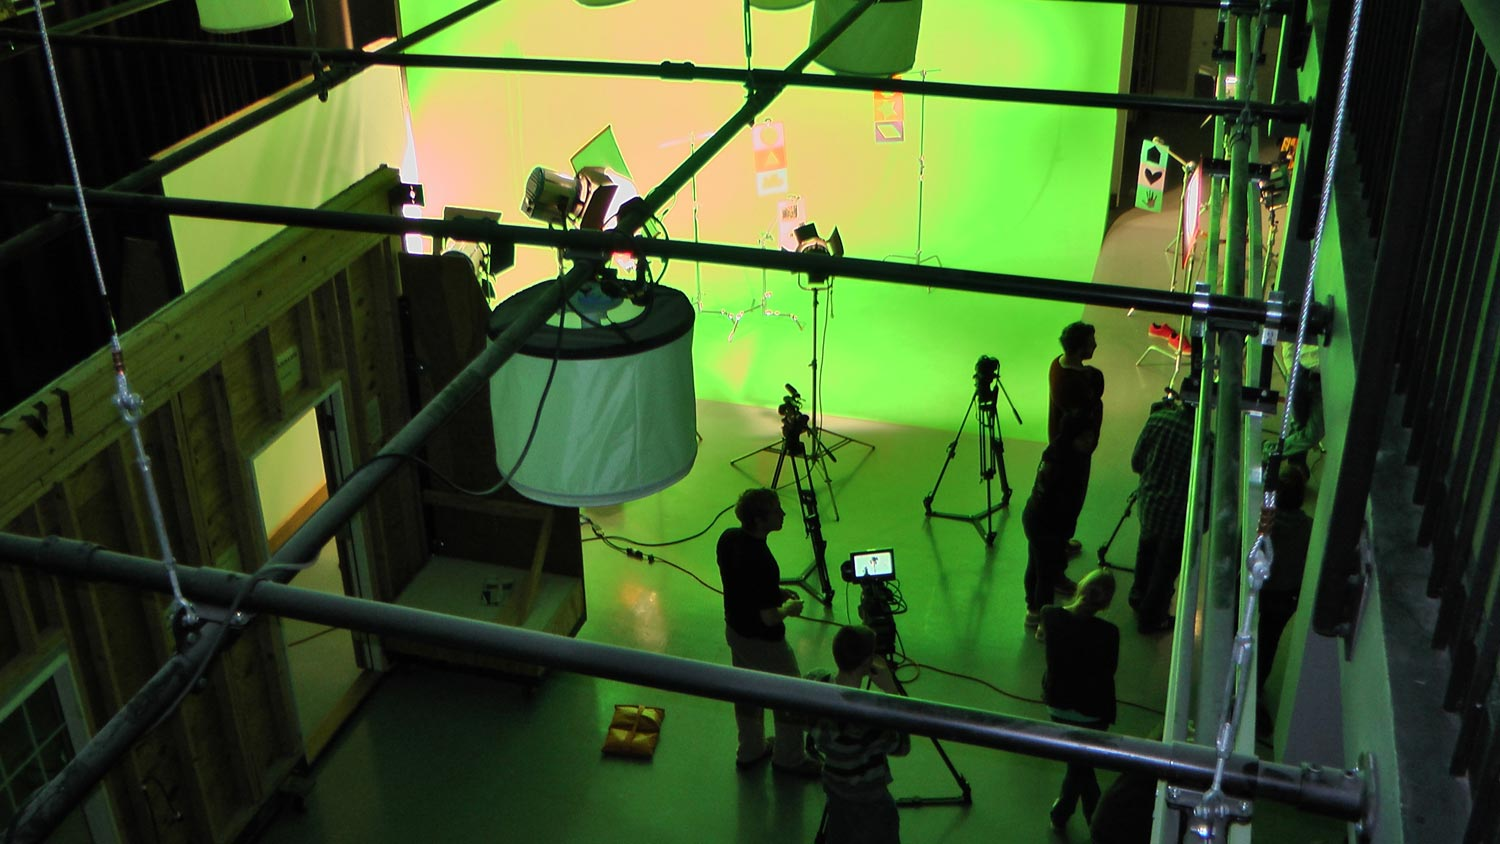 Arial view of a videoshoot with multiple camera